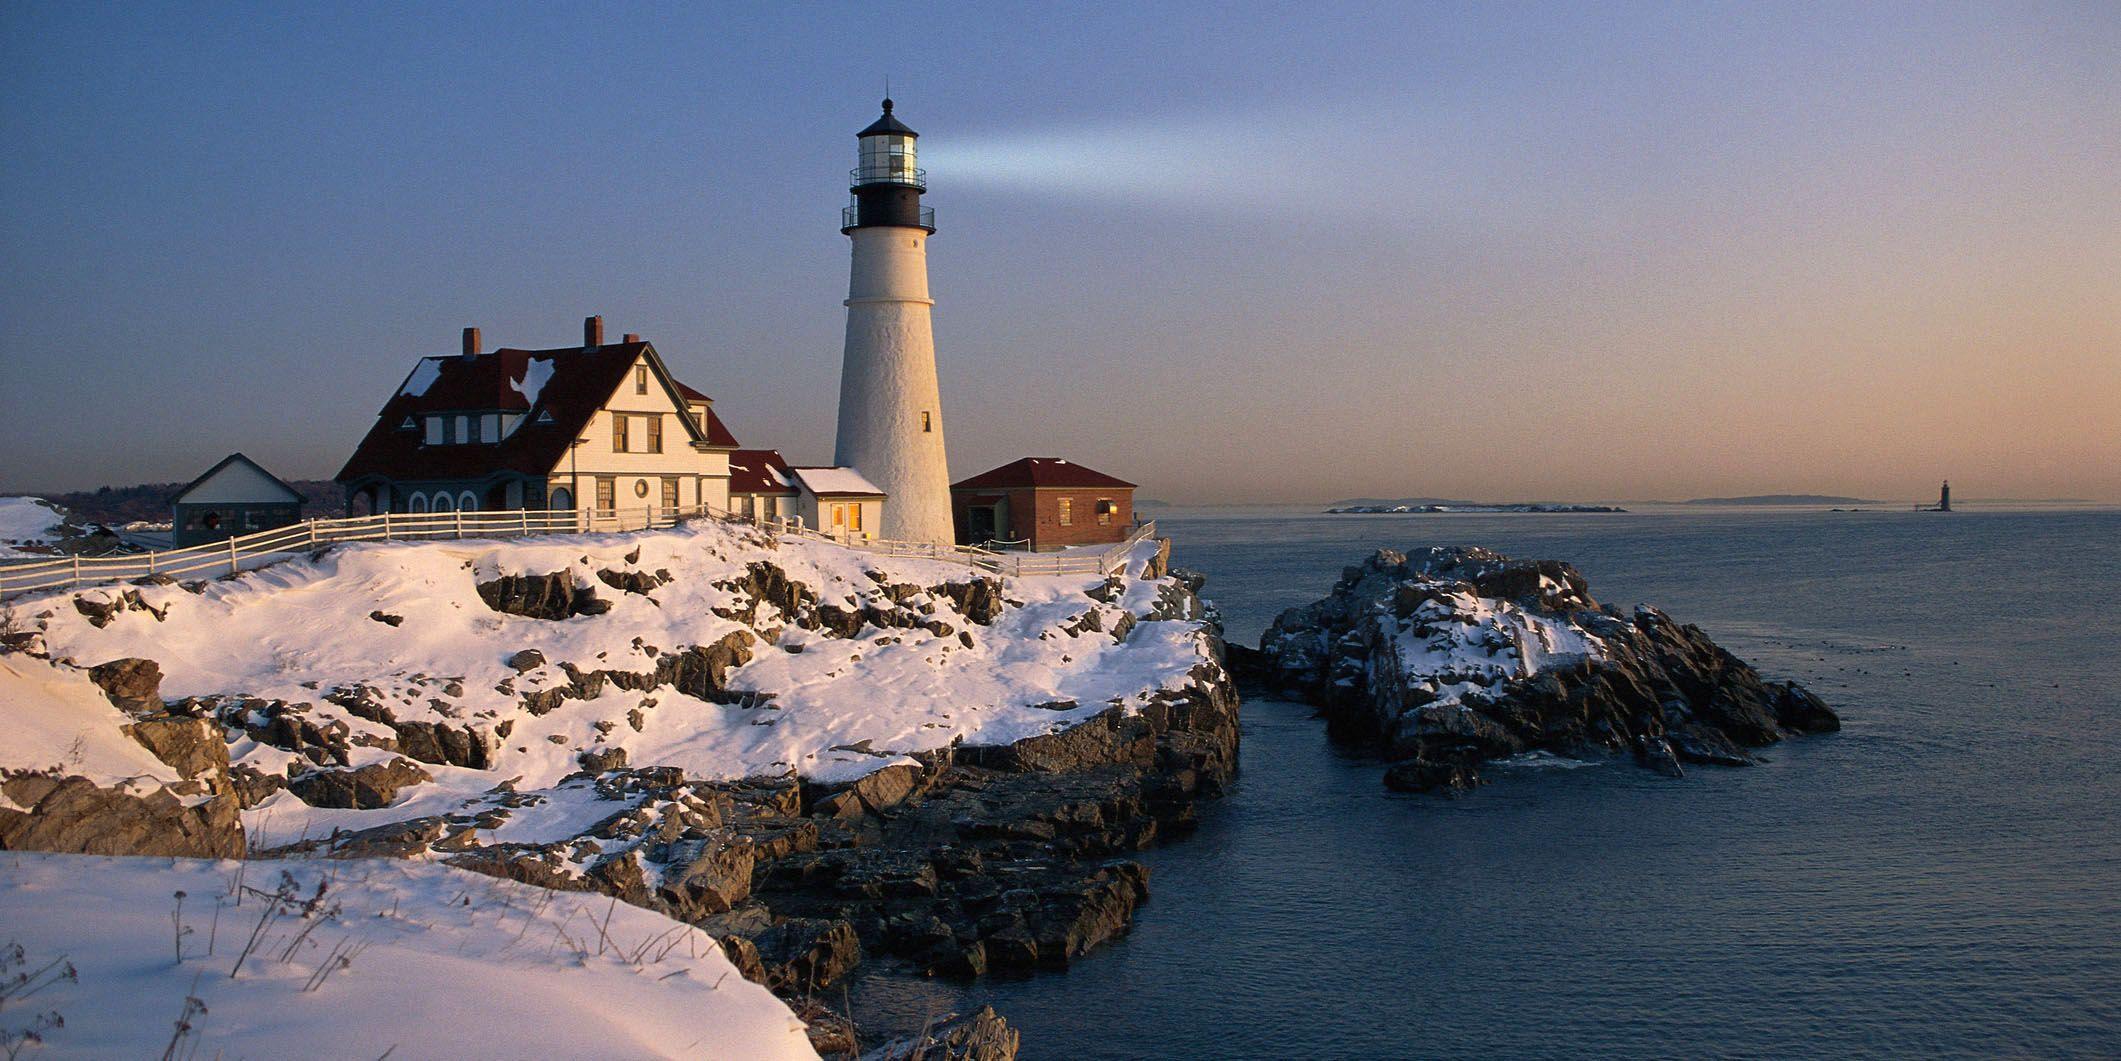 9 Reasons Why The Off Season Is The Best Time To Visit Maine